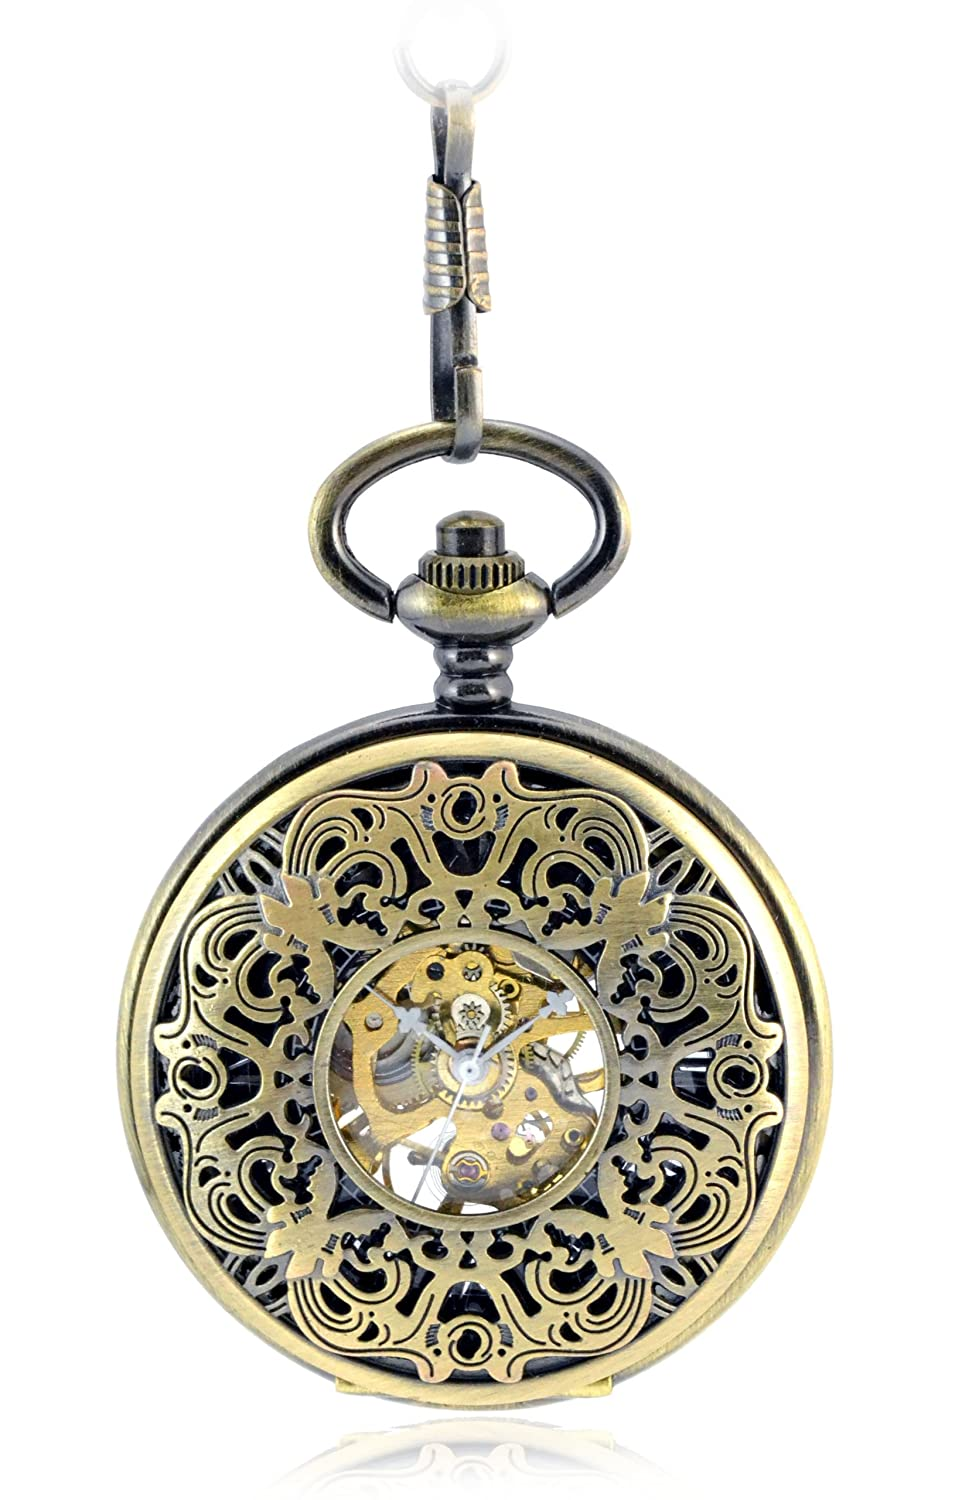 Victorian Men's Accessories – Suspenders, Gloves, Cane, Pocket Watch, Spats Tirio antique brass plating carving Hollow Skeleton Hand Wind Mechanical Pocket Watch $17.97 AT vintagedancer.com